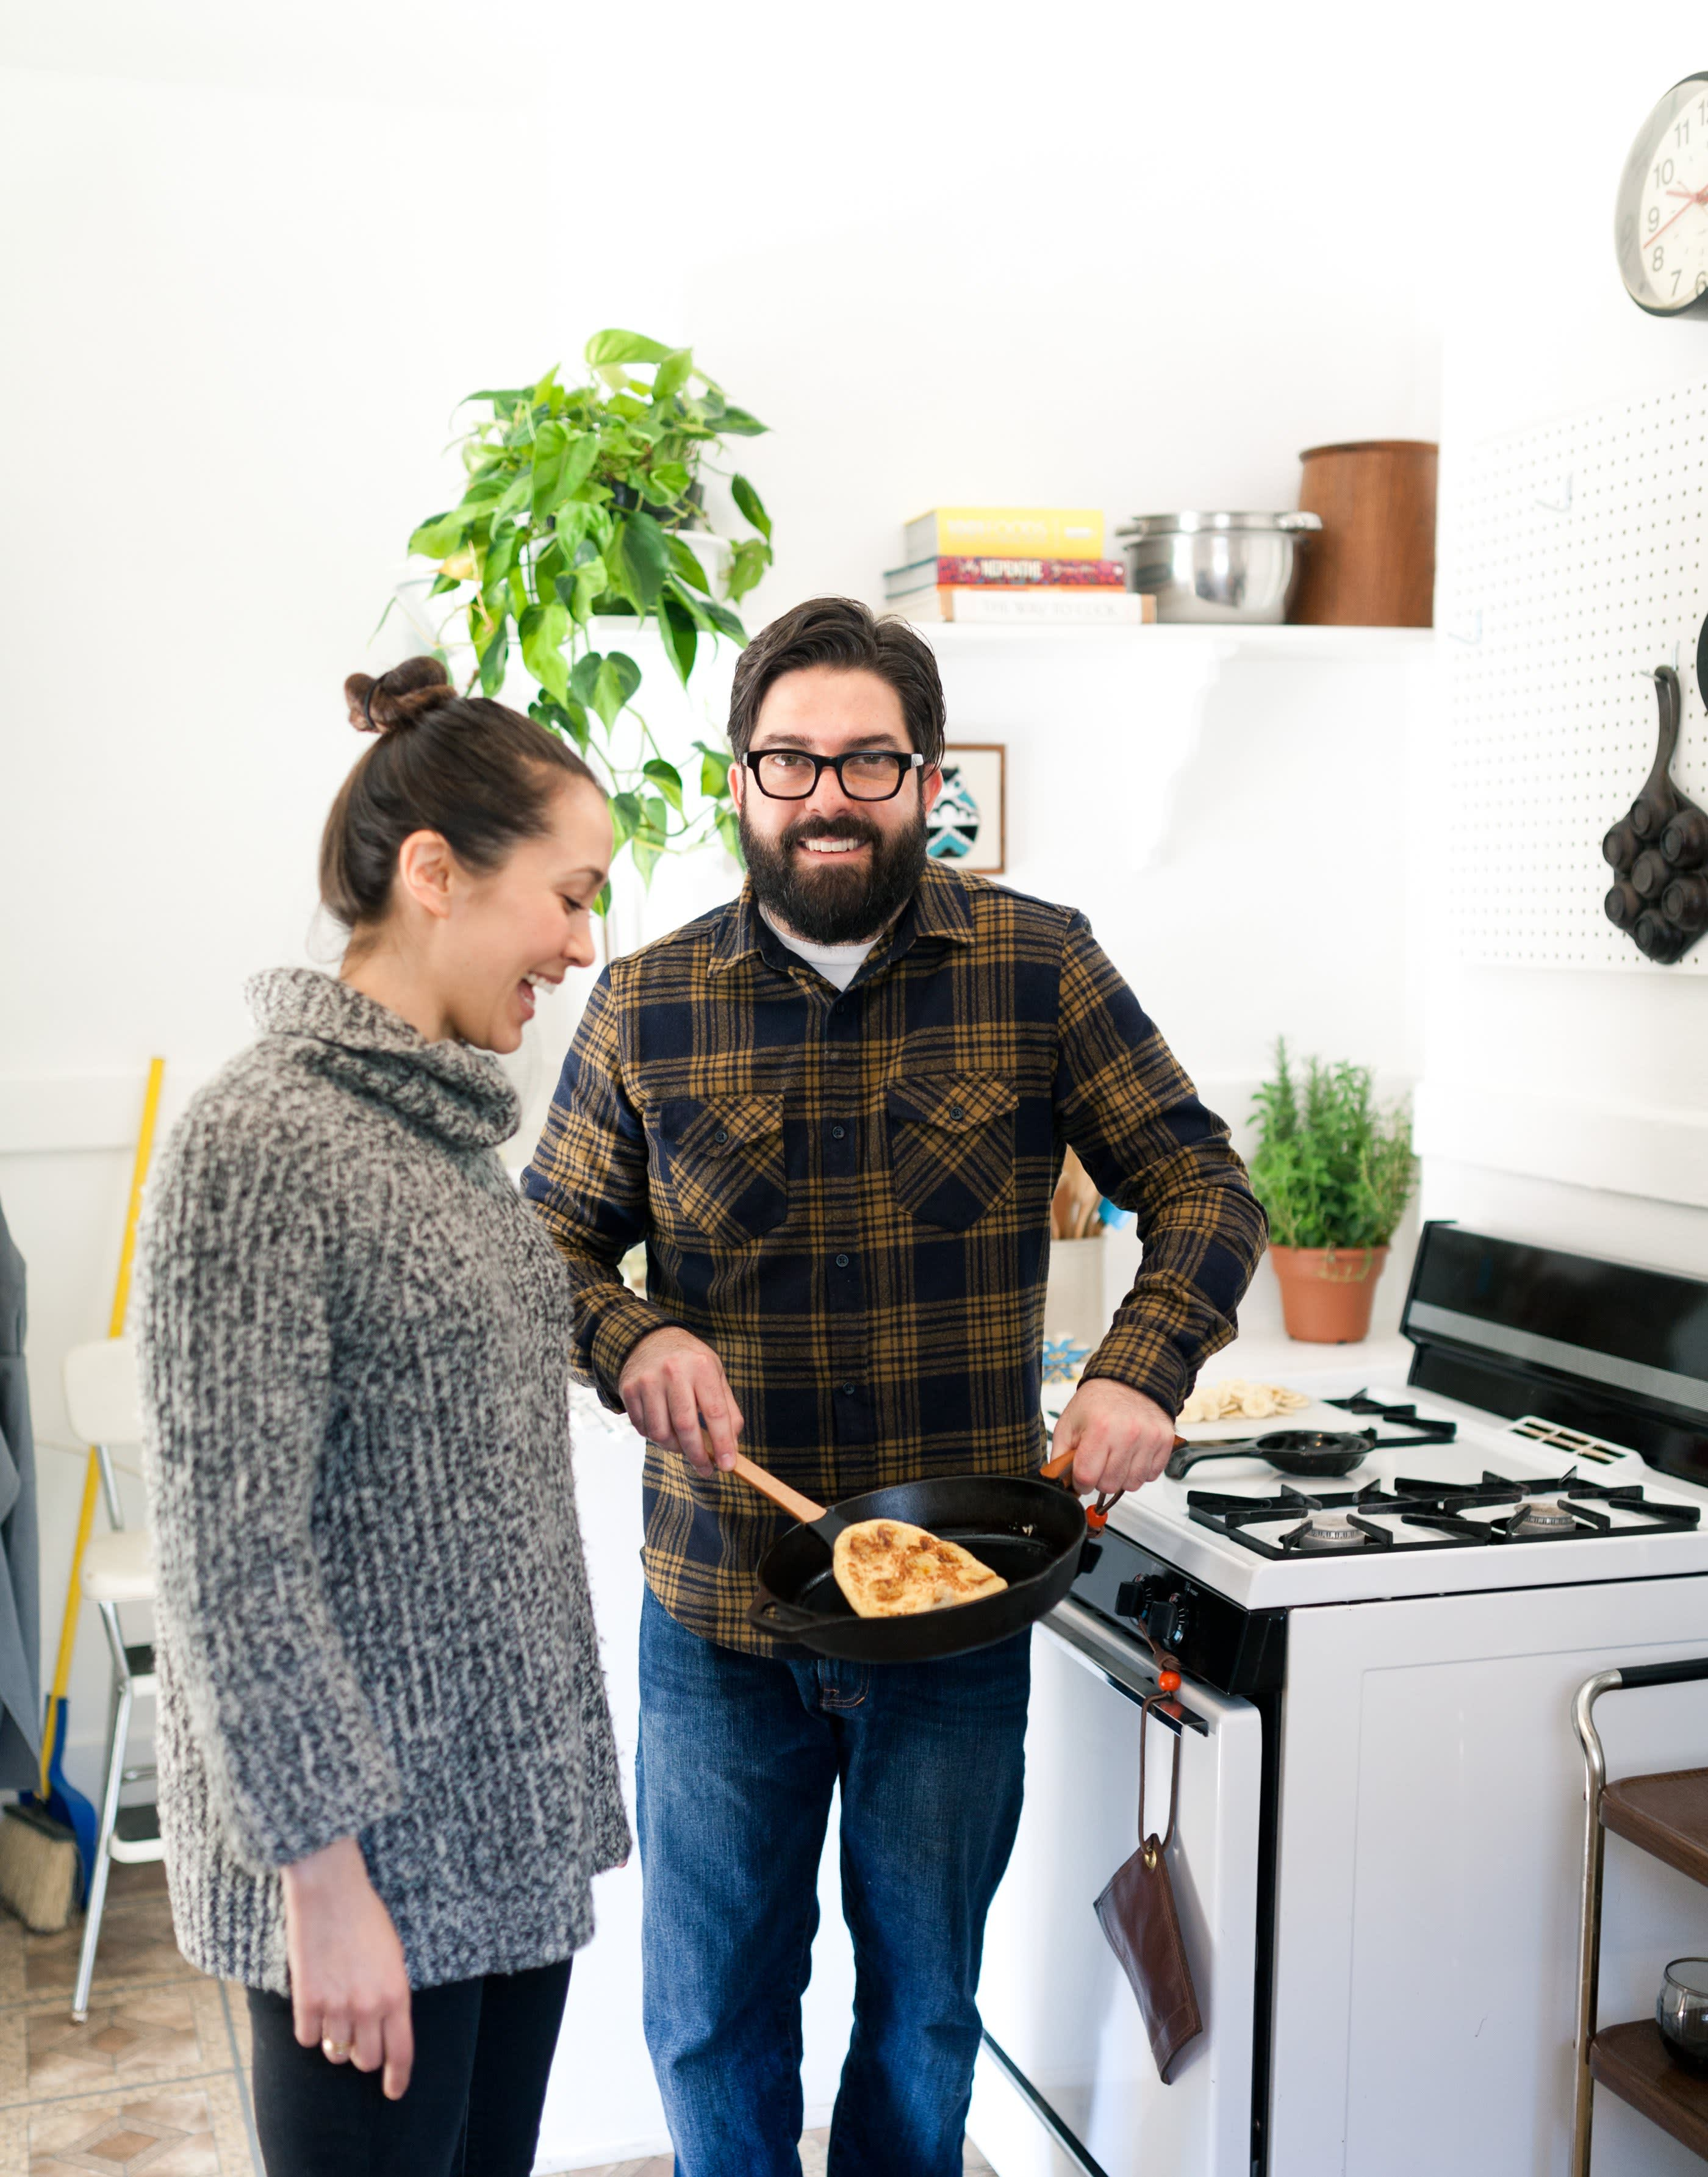 Where I Cook: Leather Craftsman Steven Soria's Rental Kitchen: gallery image 1